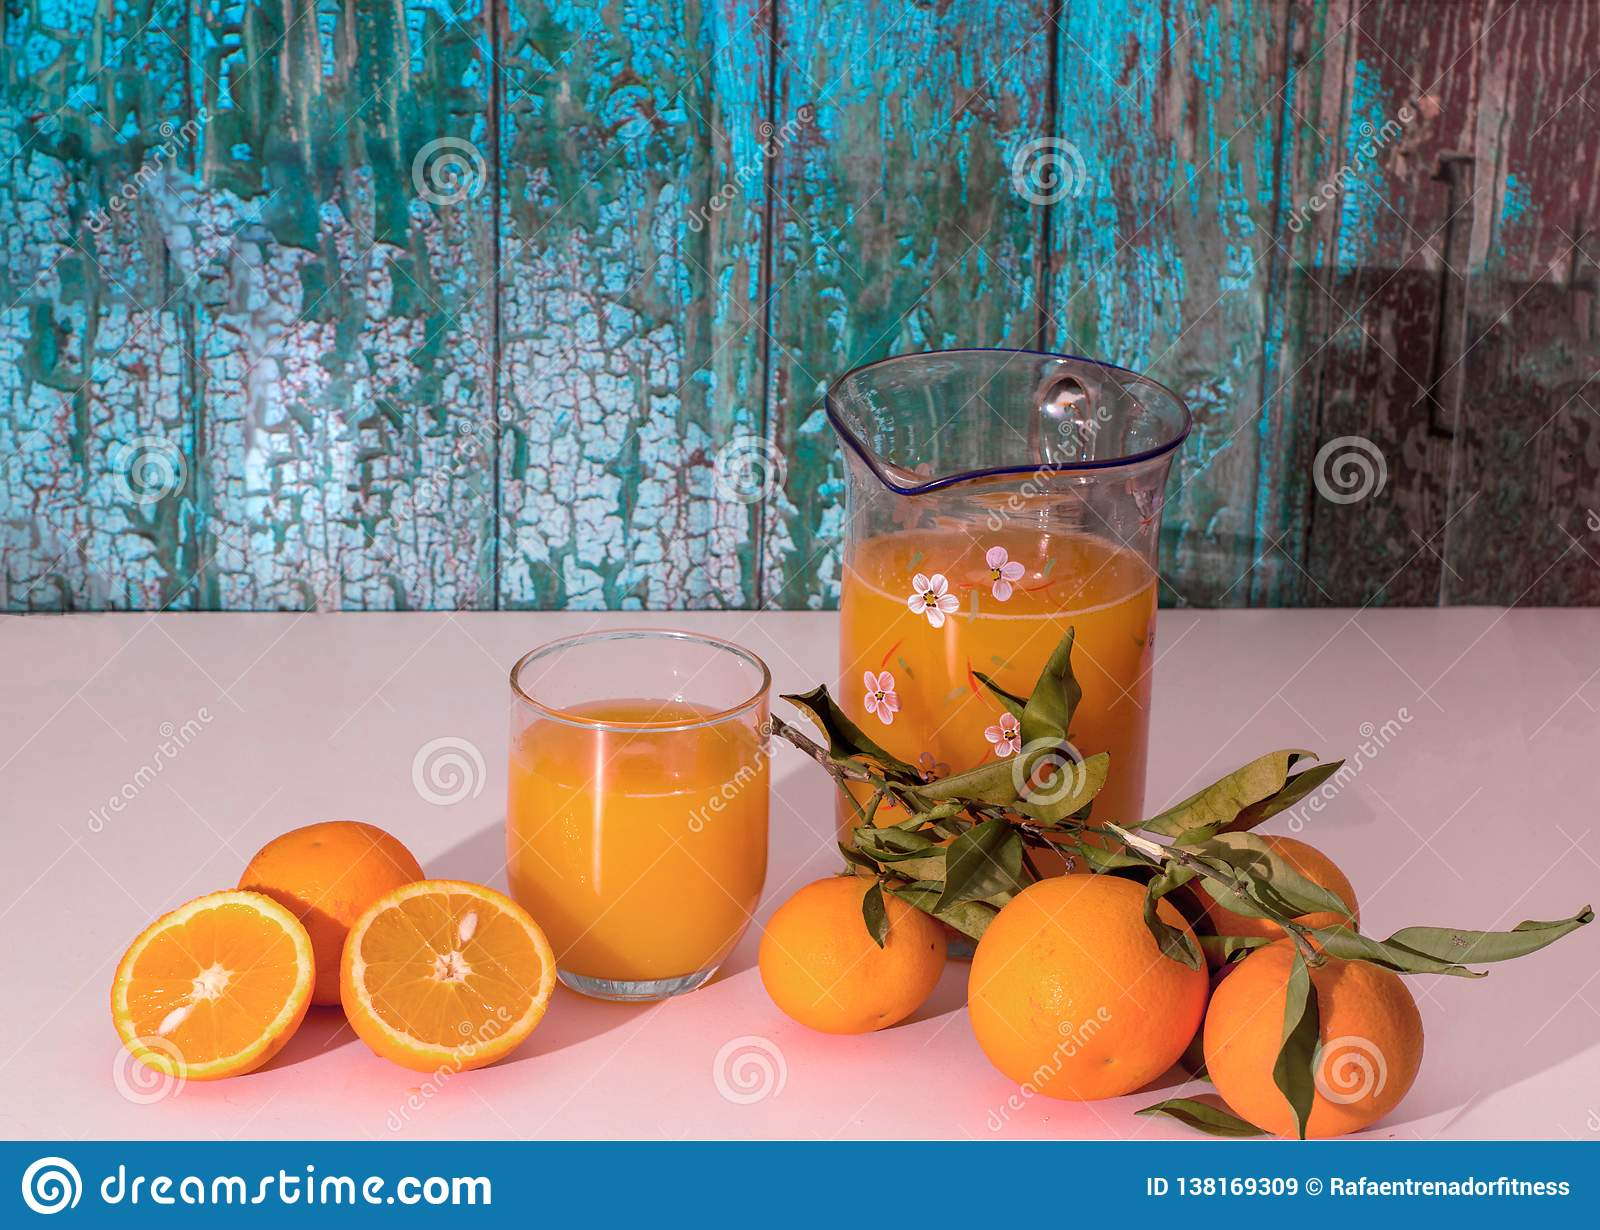 Orange split in half with a glass and a jug of orange juice